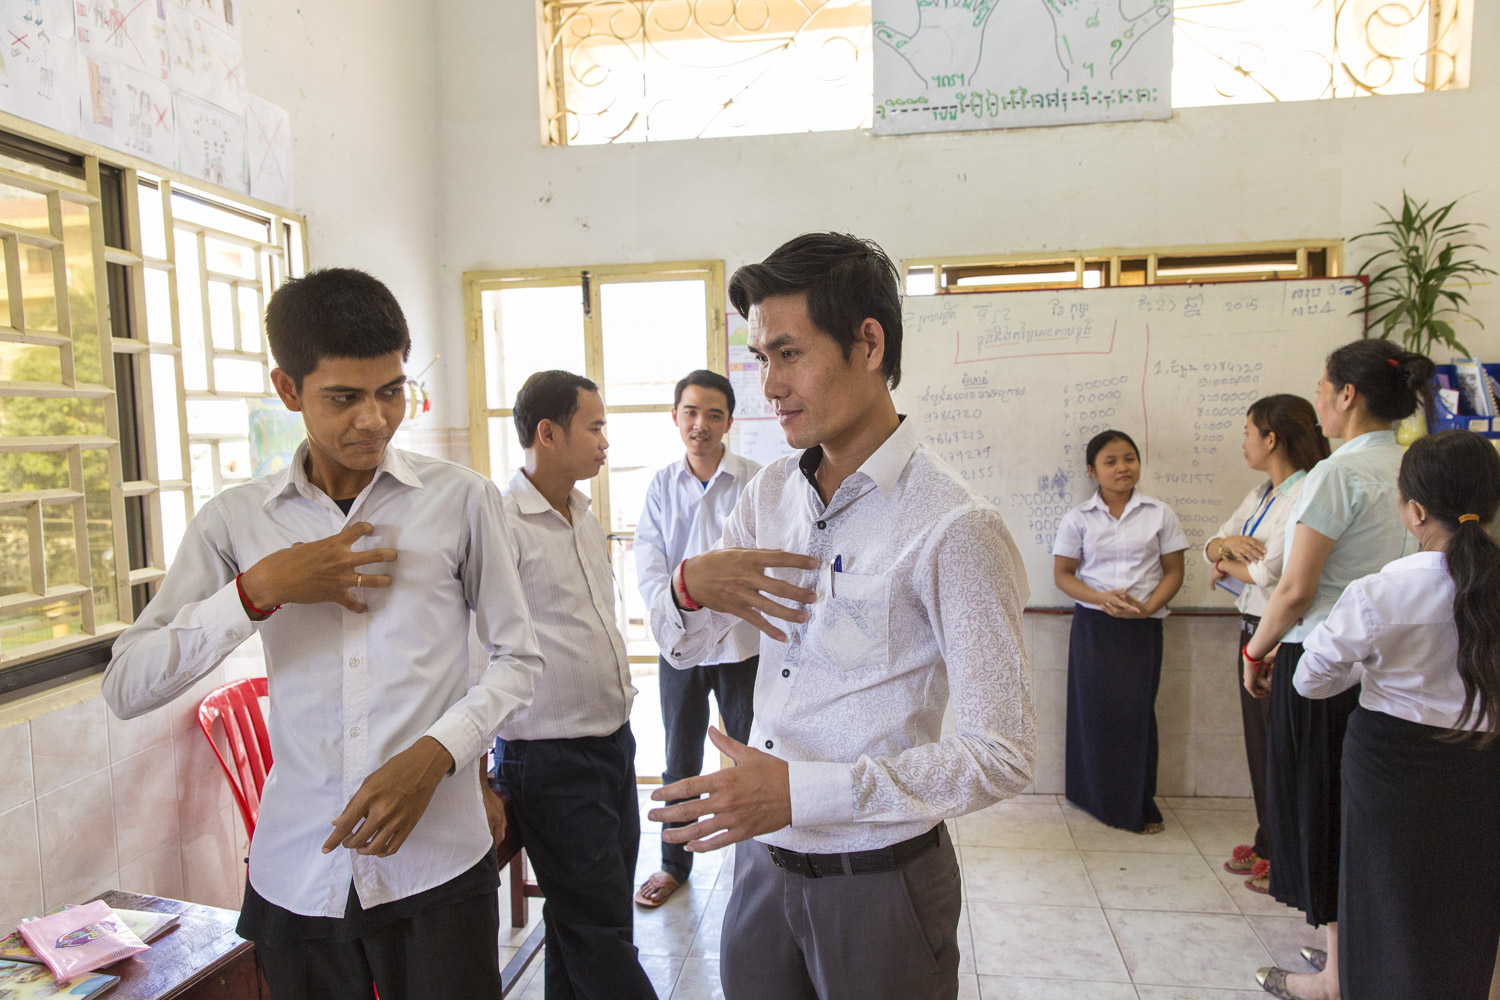 Sopor Lay (middle) a graduate of DDP's program is now a teacher at their Phnom Penh center.